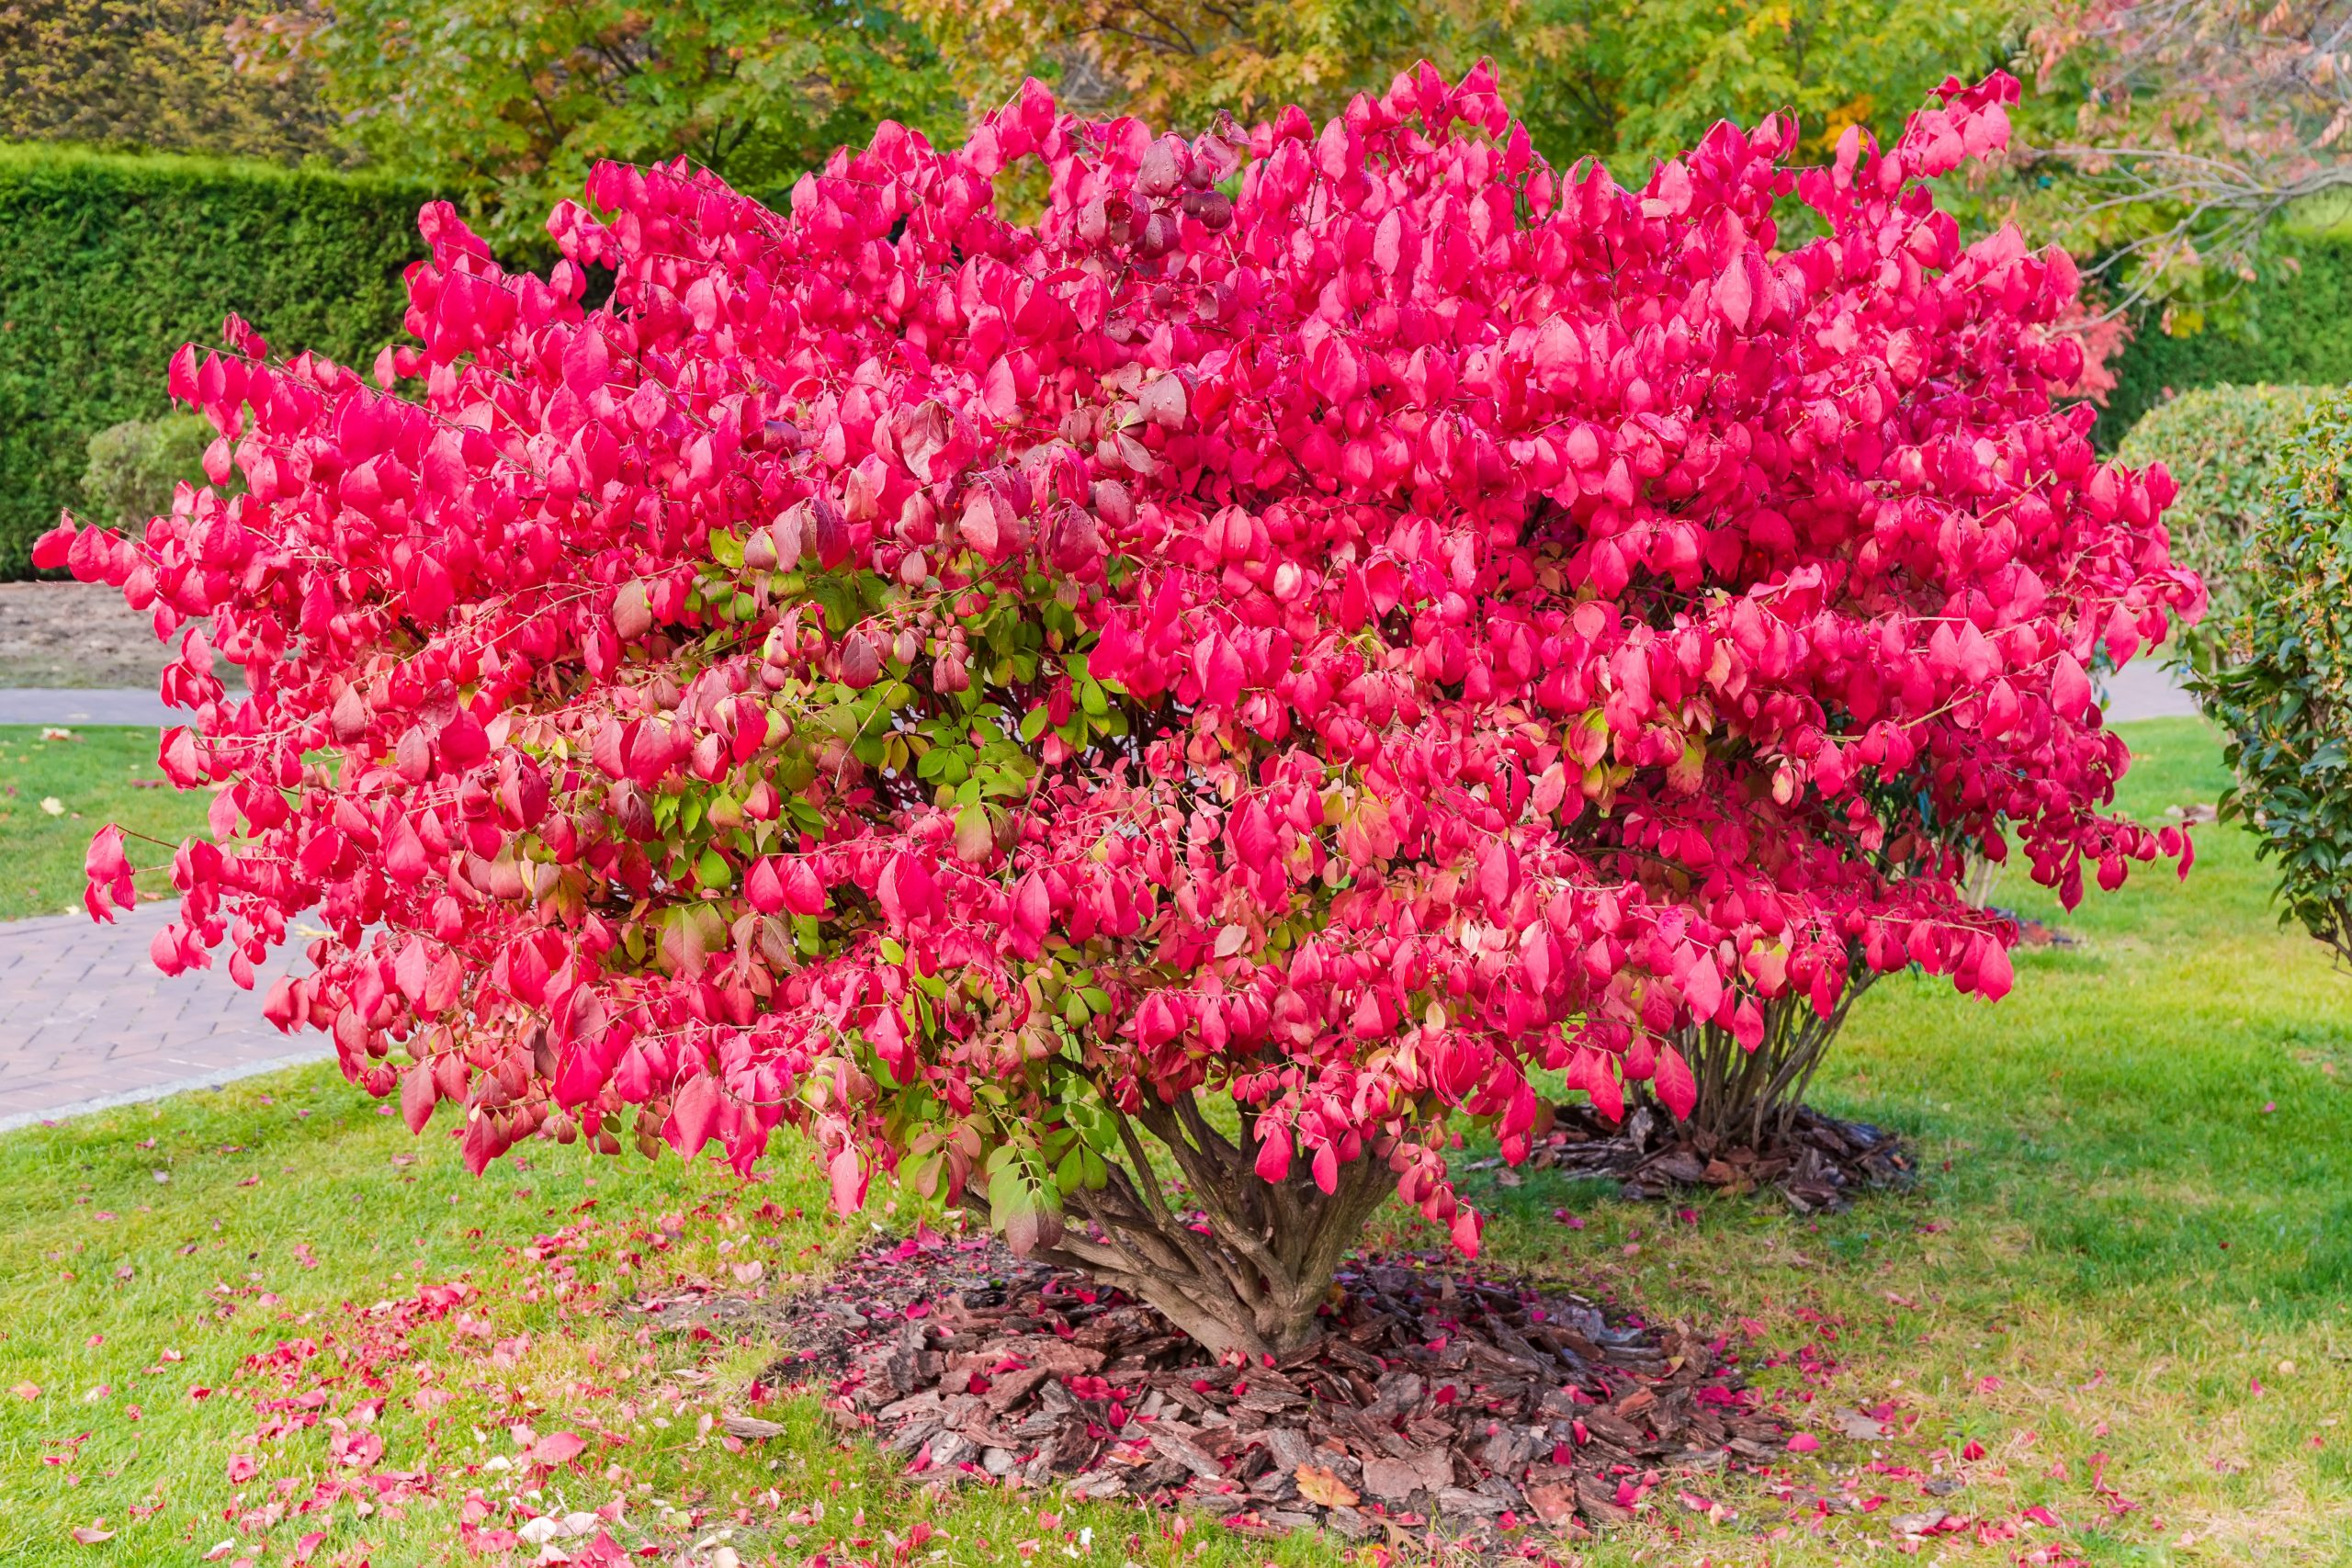 Shrubs,Of,The,Euonymus,Alatus,,Also,Known,As,Winged,Euonymus